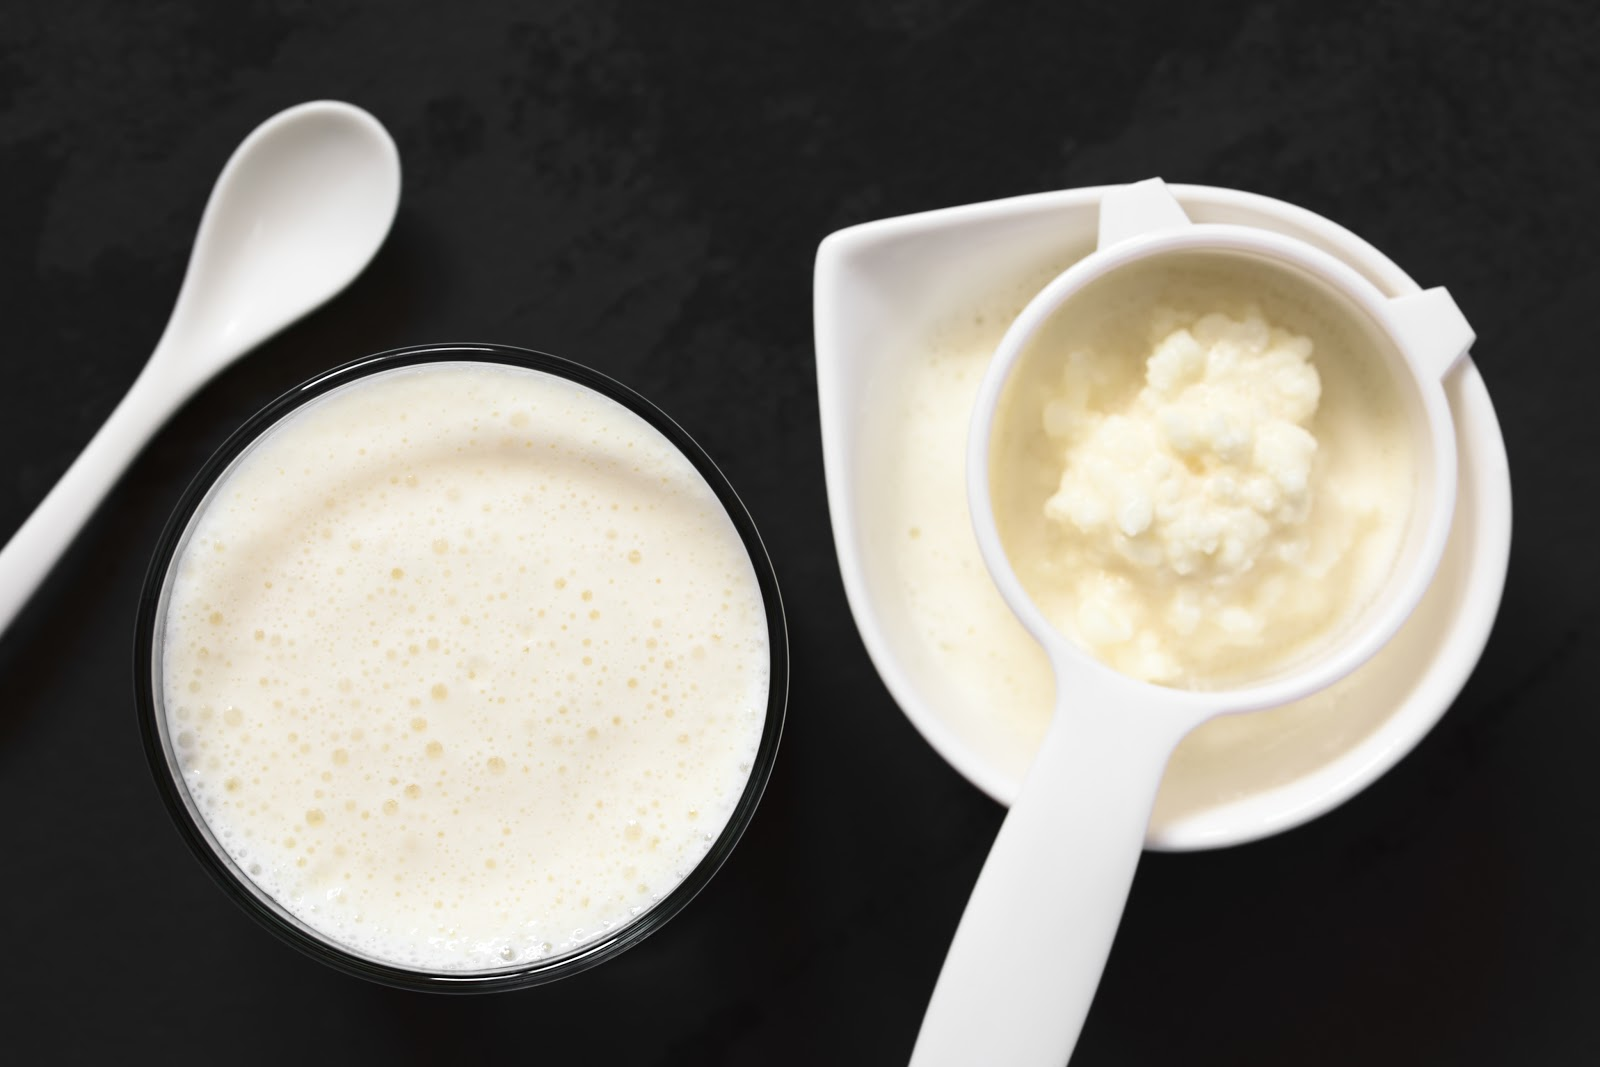 Benefits of kefir: Homemade kefir in a glass and sifting spoon